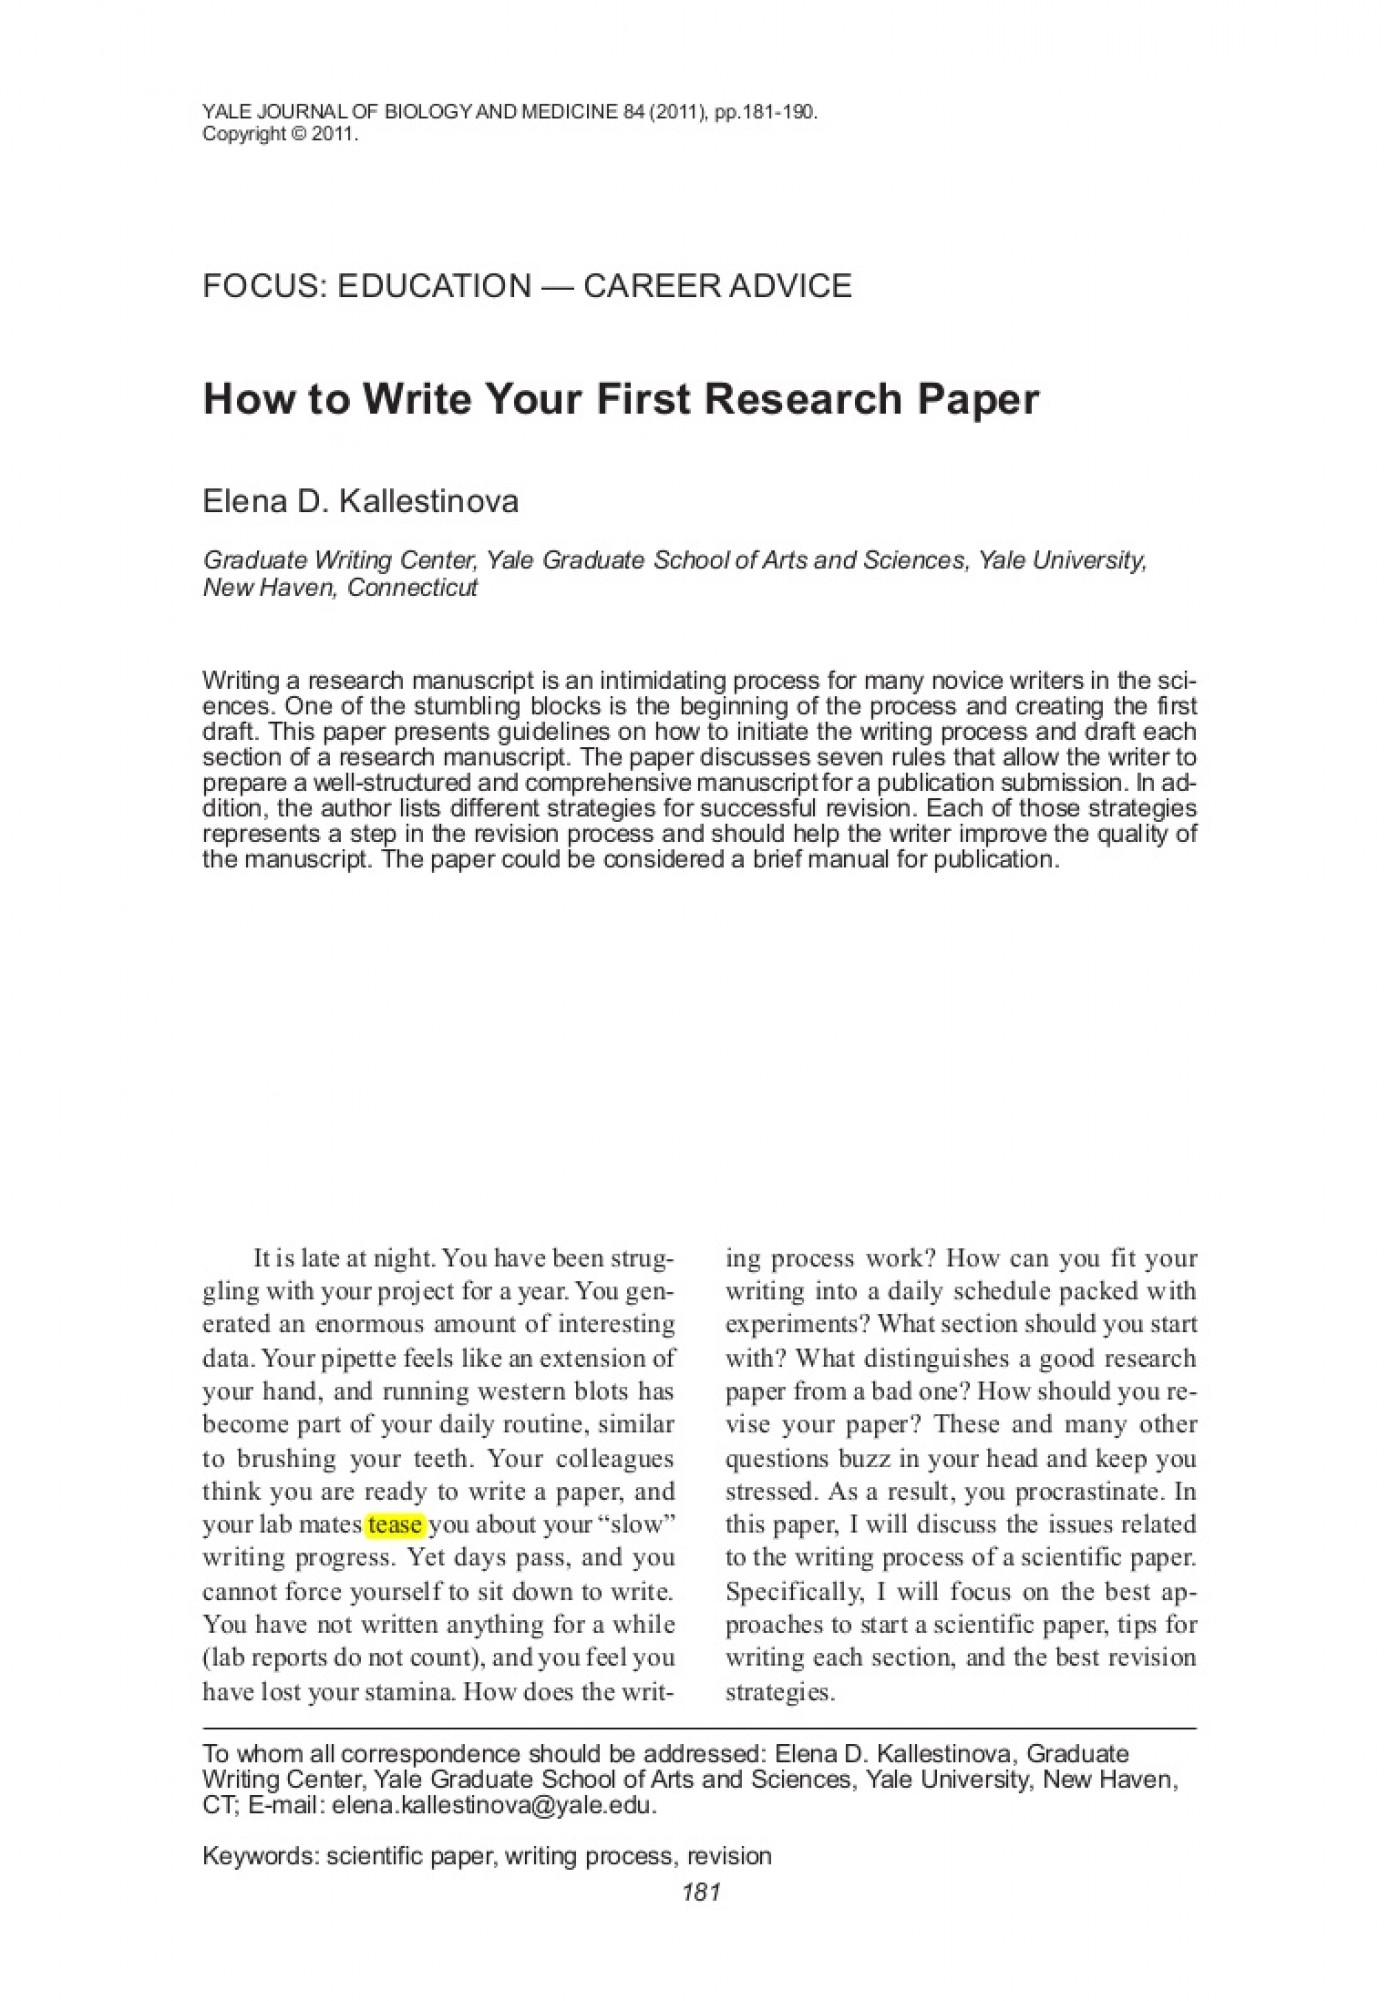 013 How To Write Research Papers Paper Howtowriteyourfirstresearchpaper Lva1 App6891 Thumbnail Best A Conclusion For Ppt Introduction College Dummies 1400